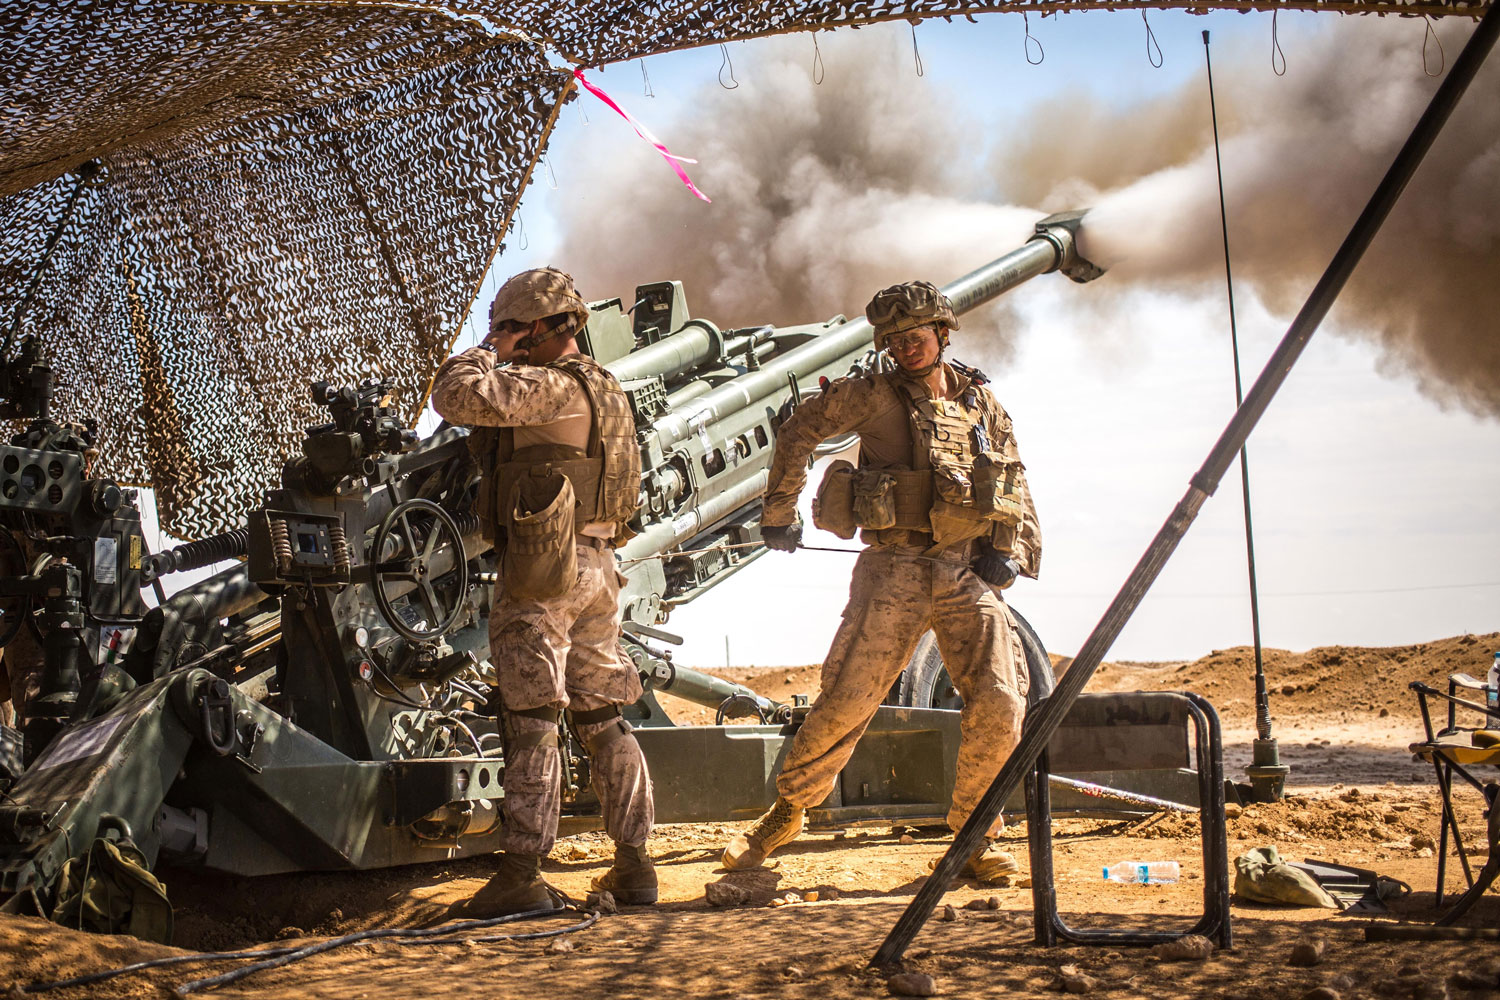 U.S. Marines with the 11th Marine Expeditionary Unit fire an M777 Howitzer during a fire mission in northern Syria as part of Operation Inherent Resolve. The unit provided 24/7 support in all weather conditions to allow for troop movements, to include terrain denial and the subduing of enemy forces.